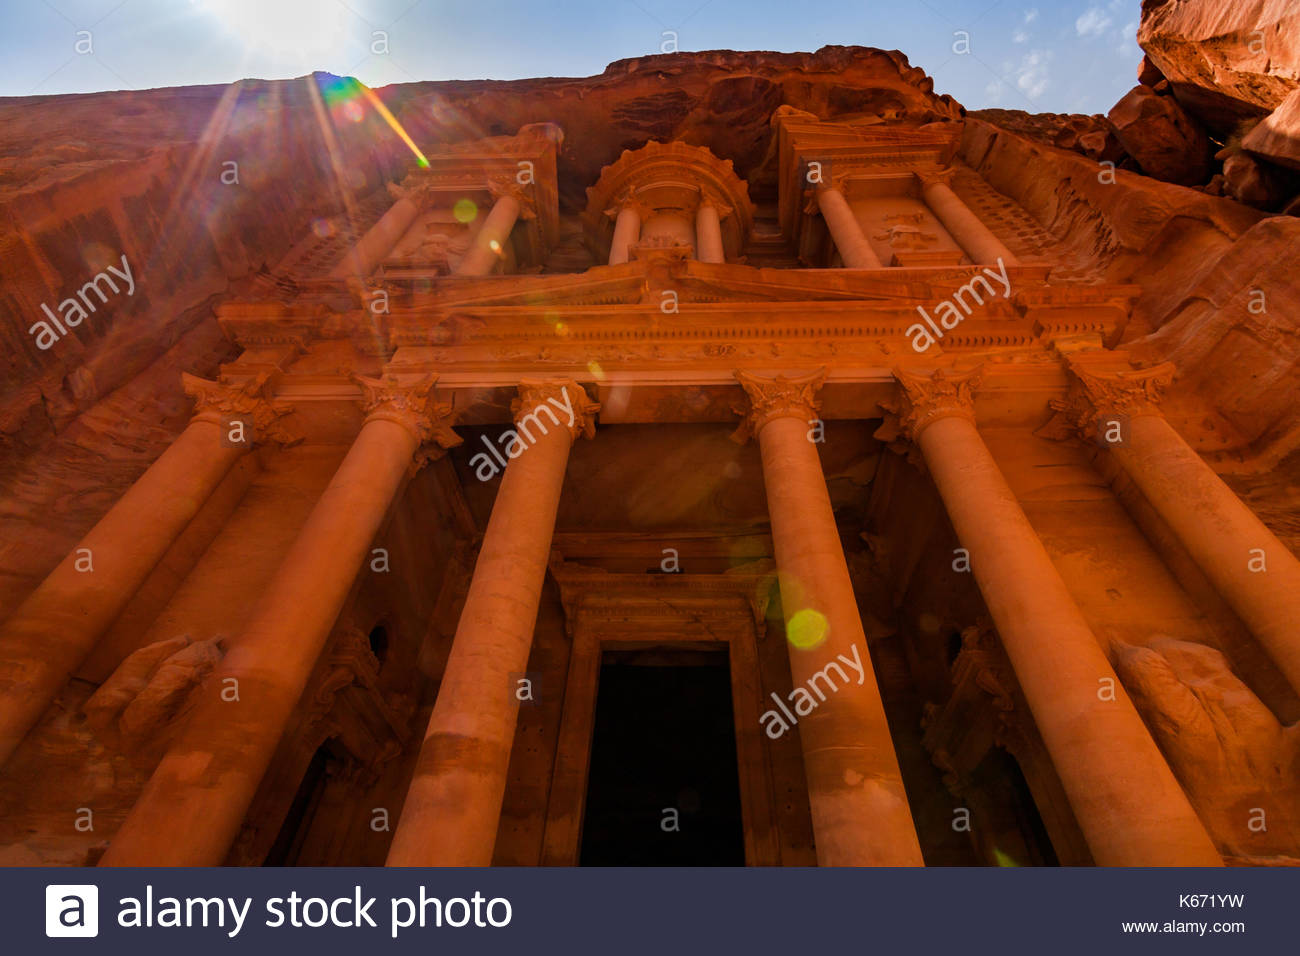 Al Khazneh - the treasury, ancient city of Petra, Jordan. - Stock Image